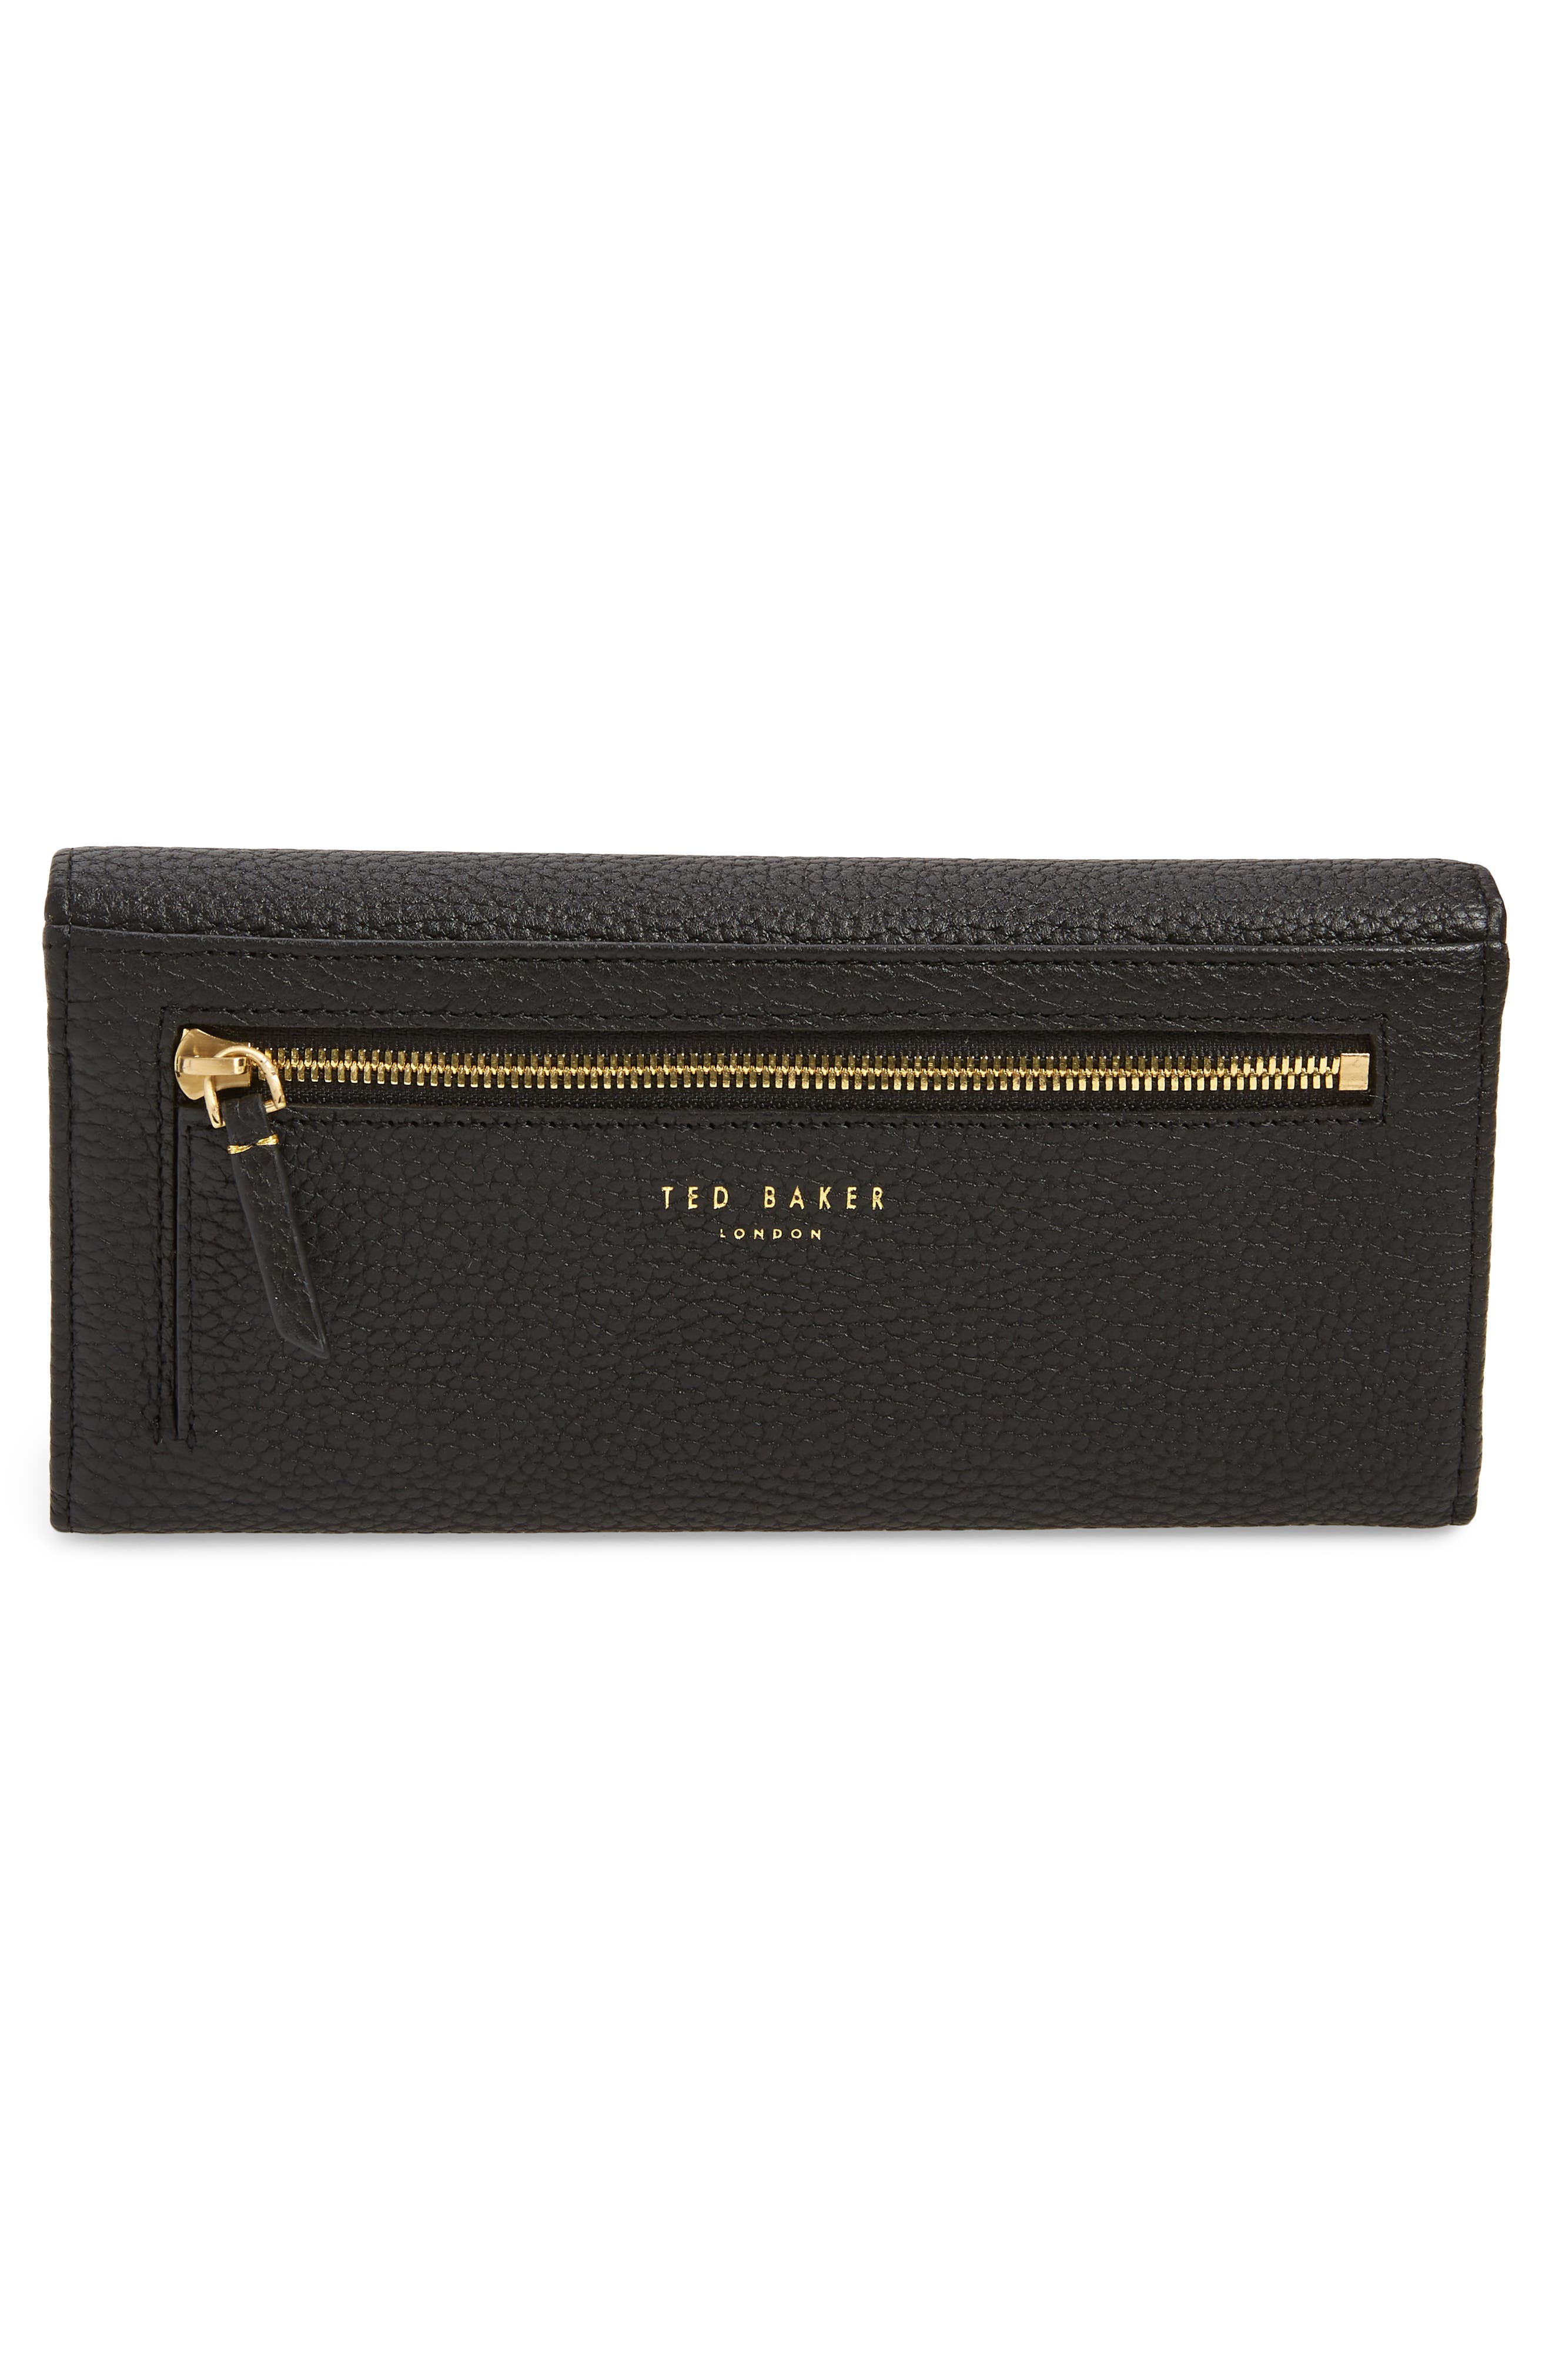 TED BAKER LONDON, Bevv Bow Leather Matinée Wallet, Alternate thumbnail 3, color, BLACK